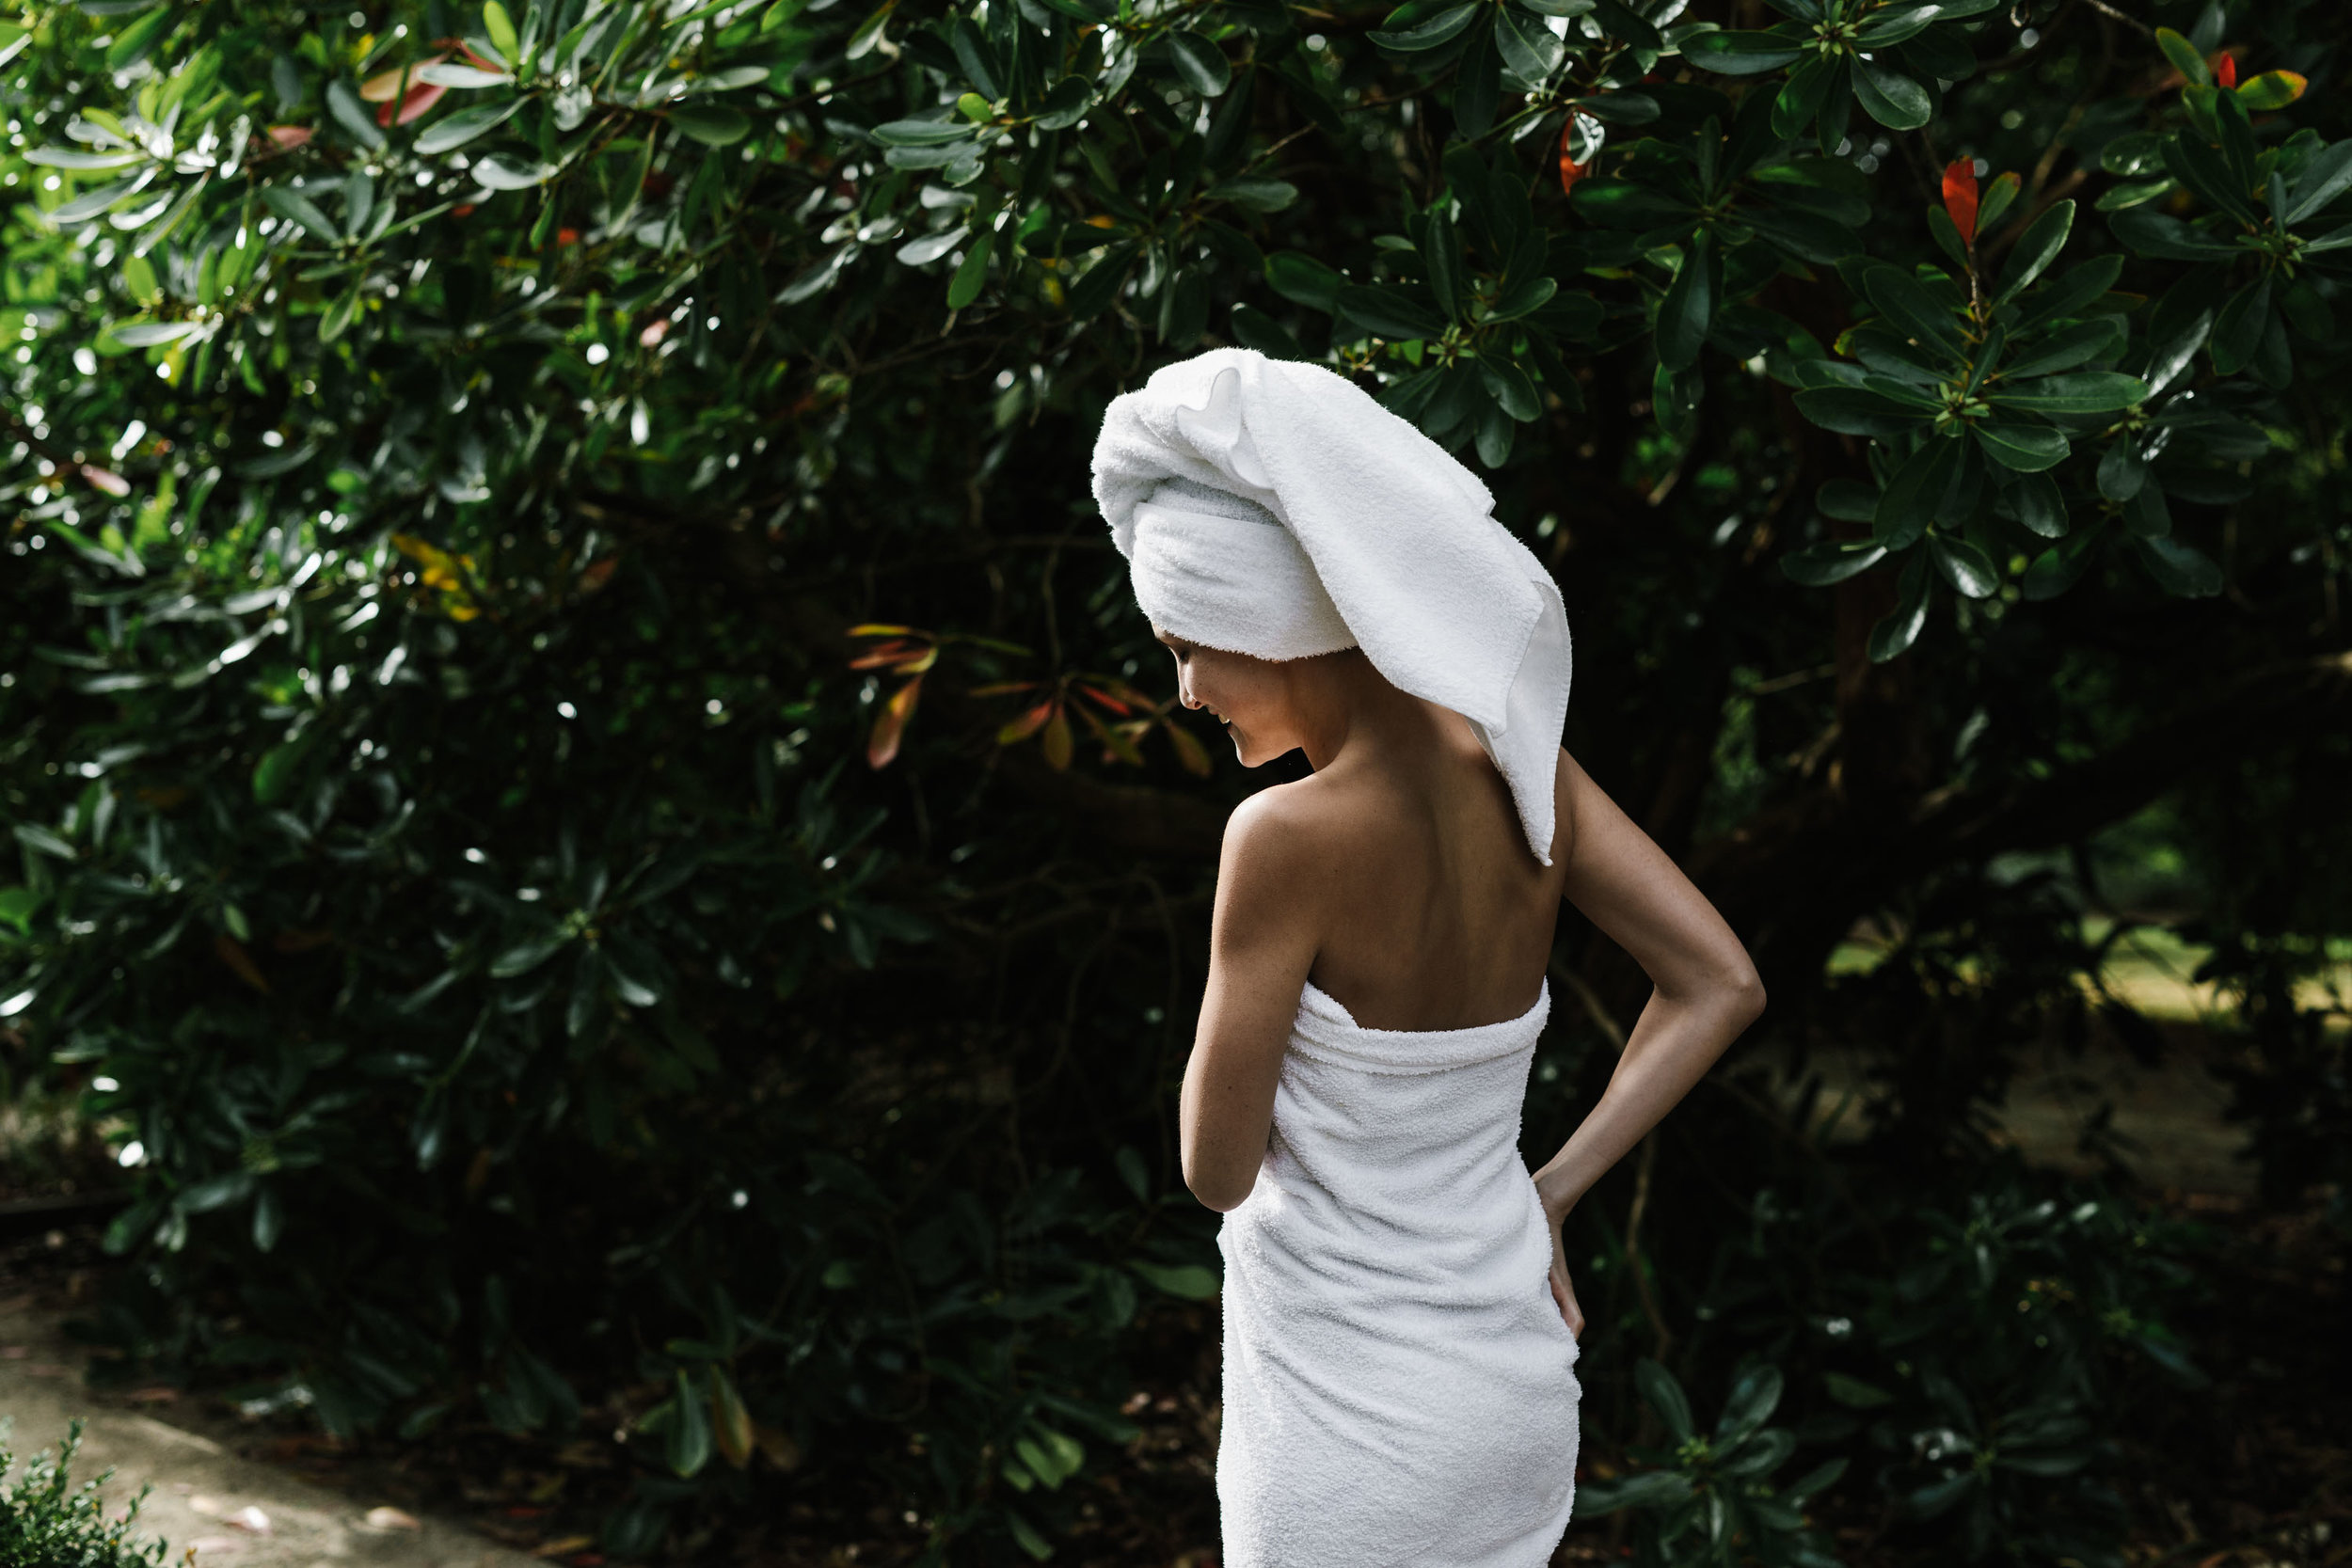 Marnie Hawson, Melbourne lifestyle photographer for The Downtime Agenda at Orchard Keepers, Red Hill